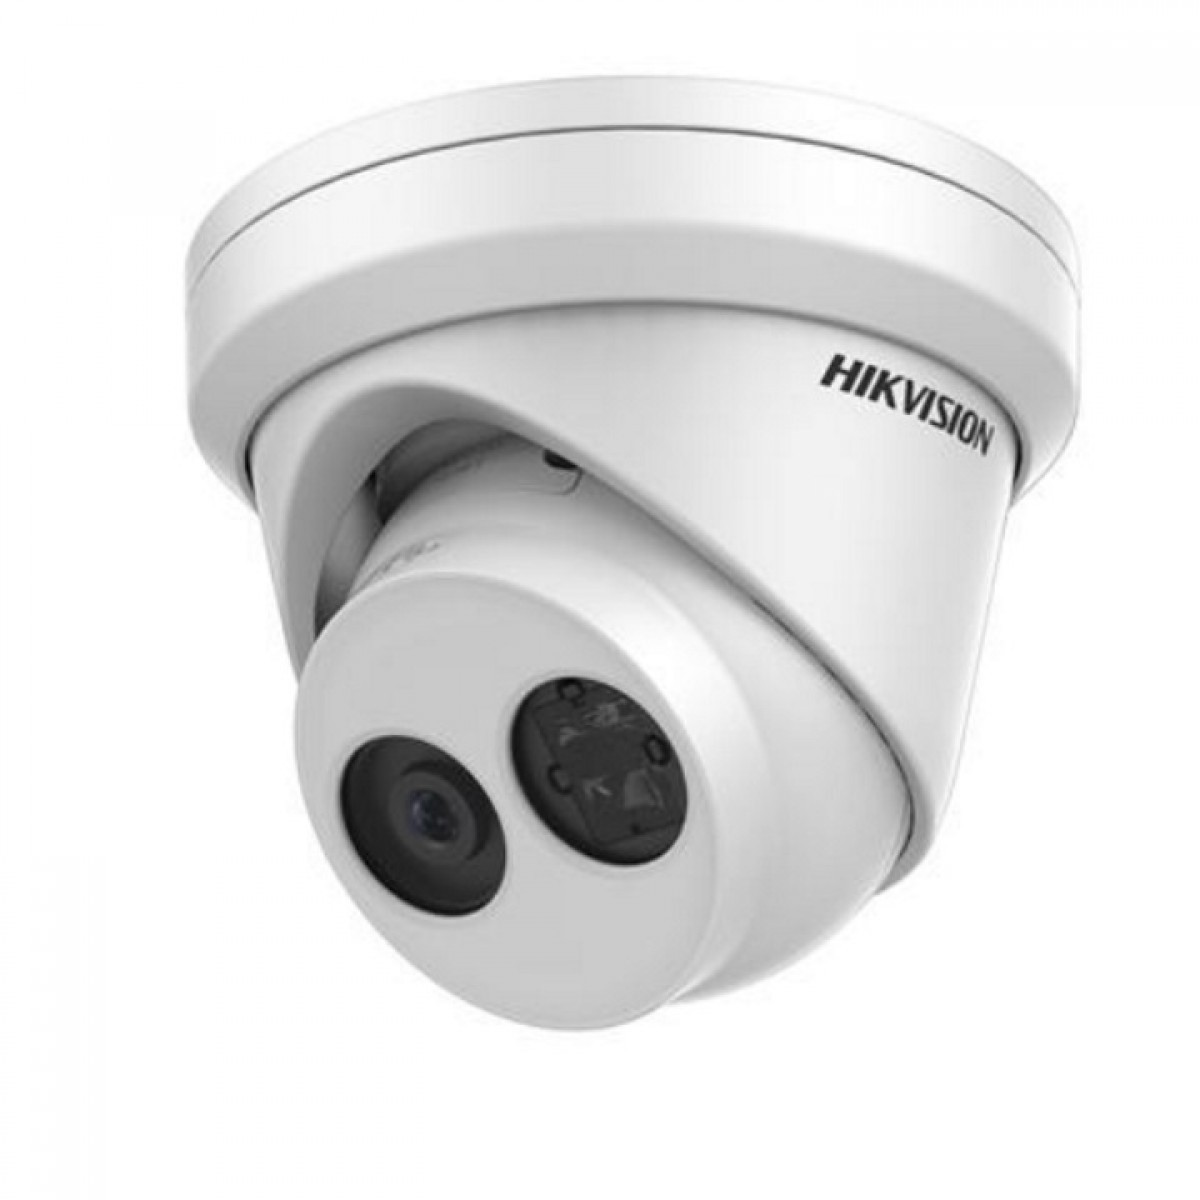 Hikvision DS-2CD2325FWD-I 2MP Ultra-Low Light 30M Exir IR POE IP67 SD-Card Turret Dome IP Network Security Camera ONVIF